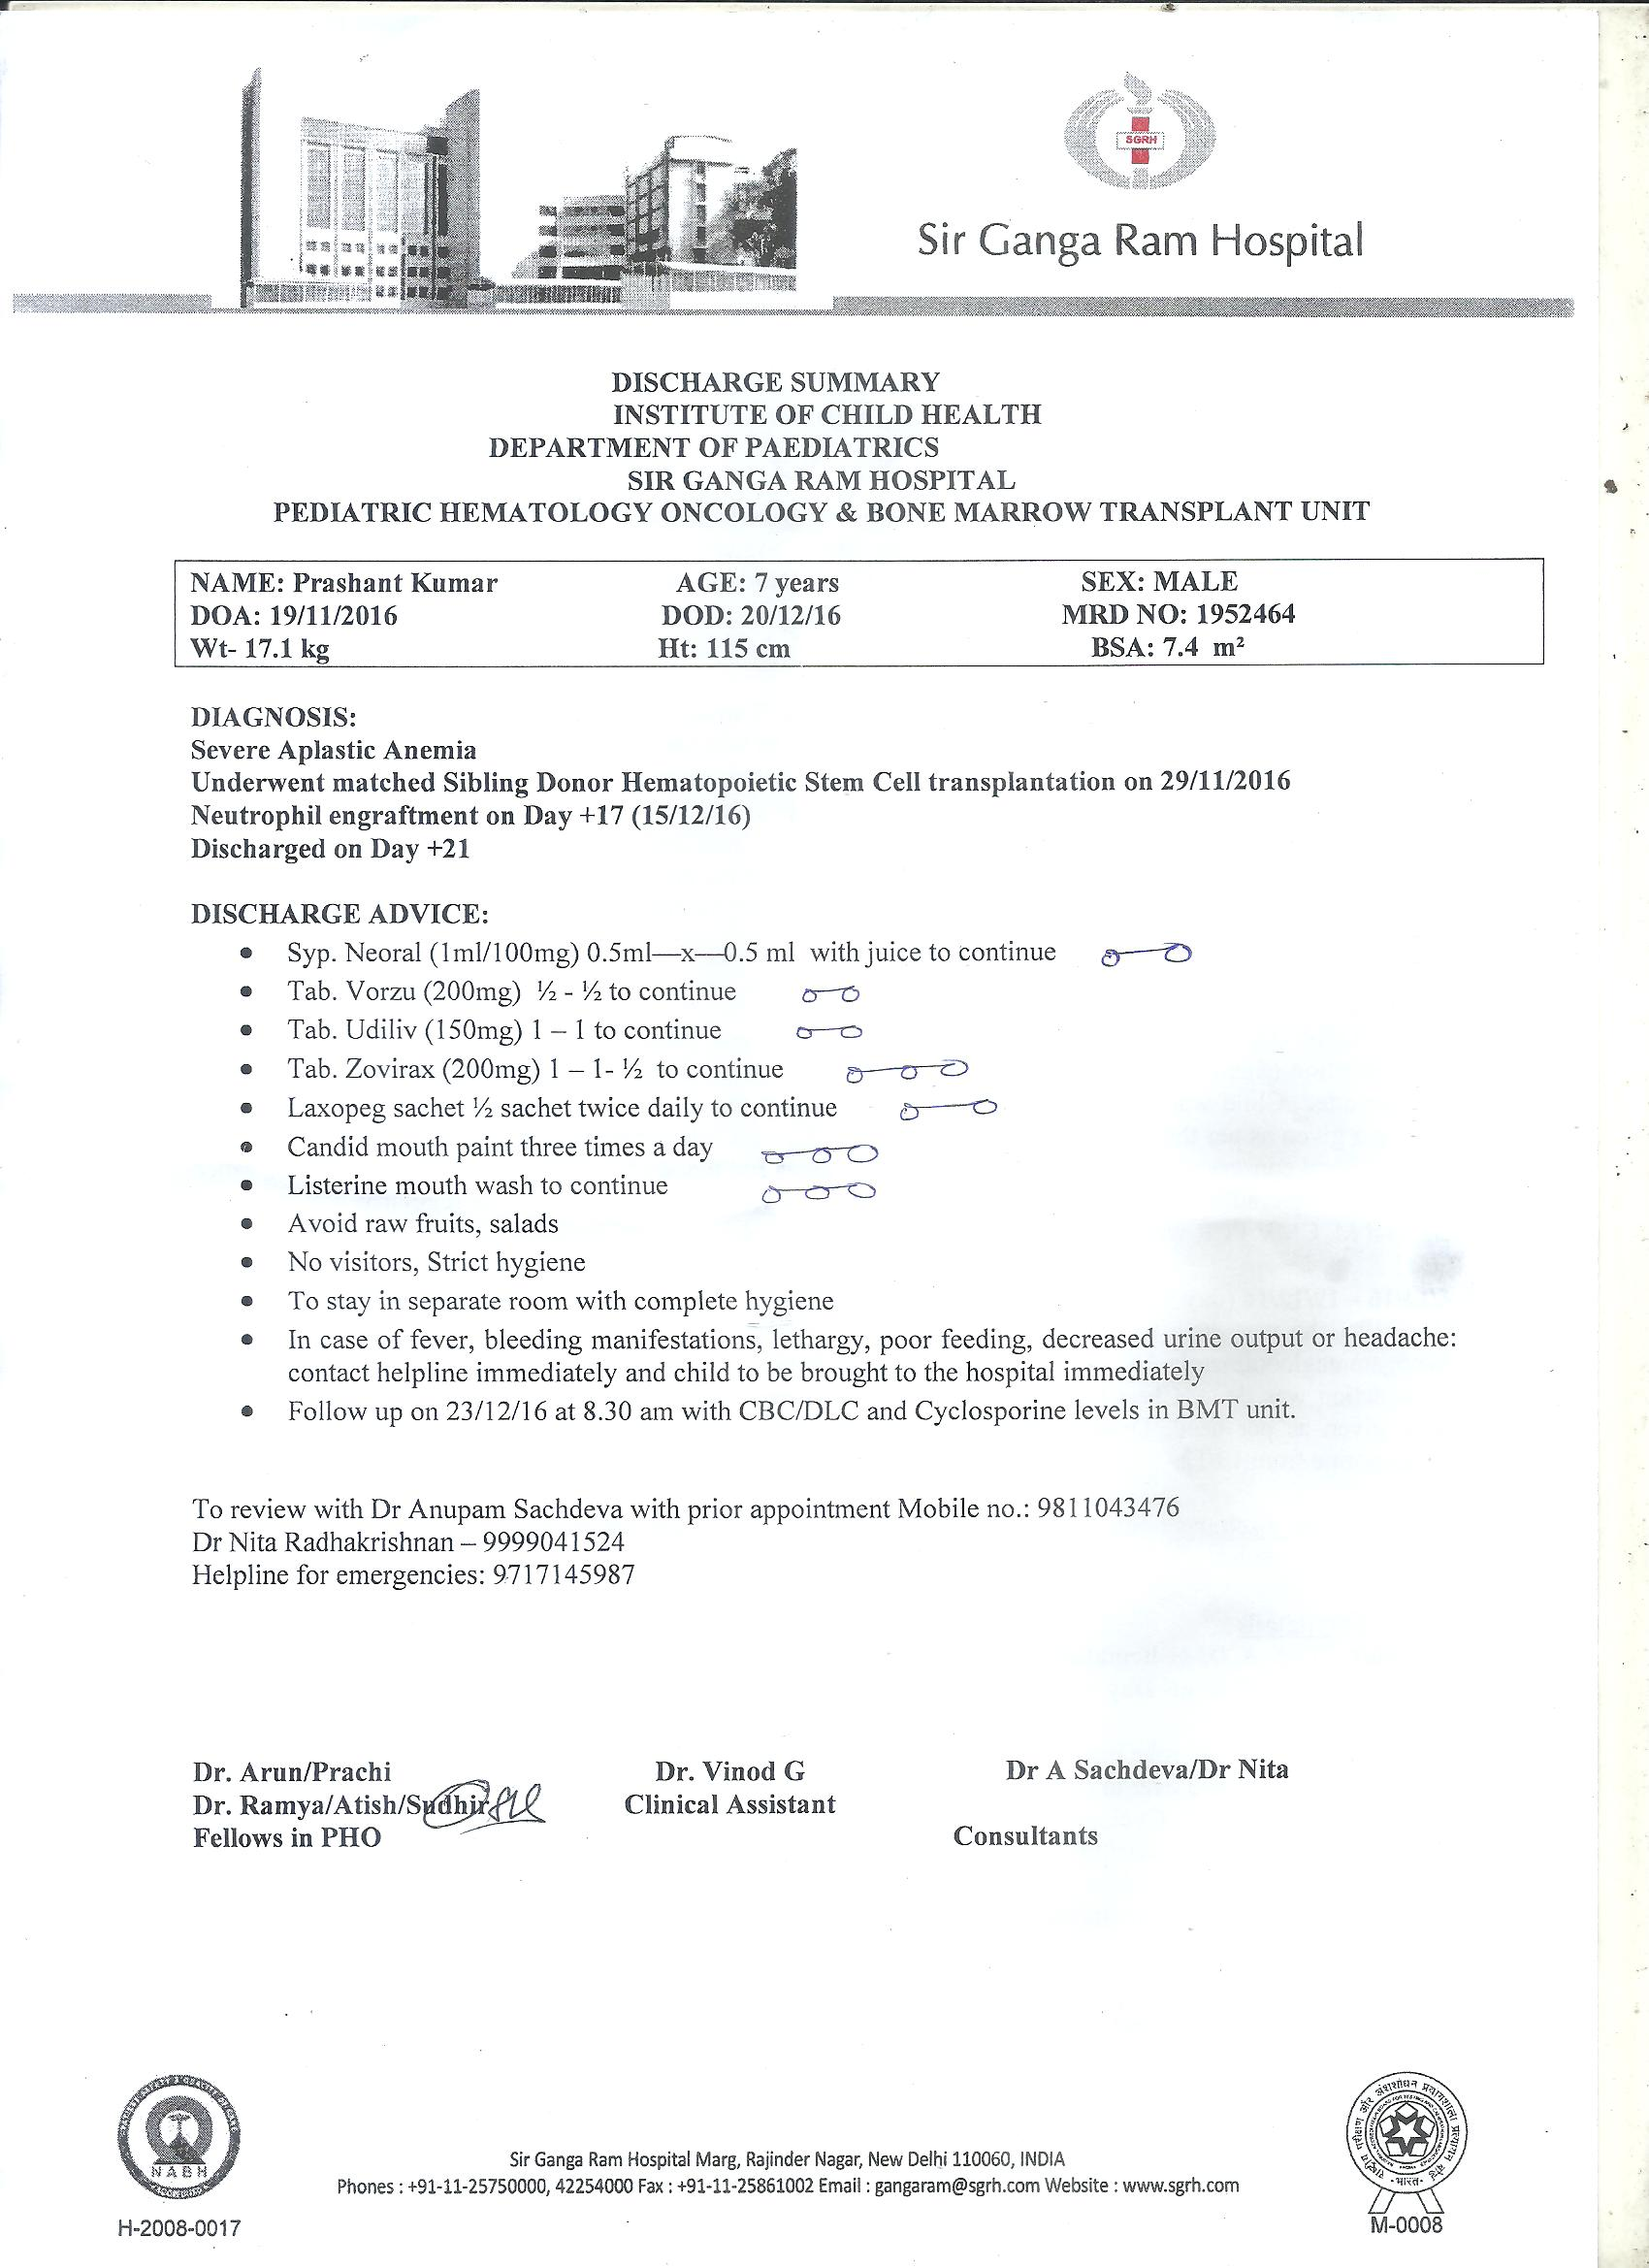 DISCHARGE REPORT PAGE 1